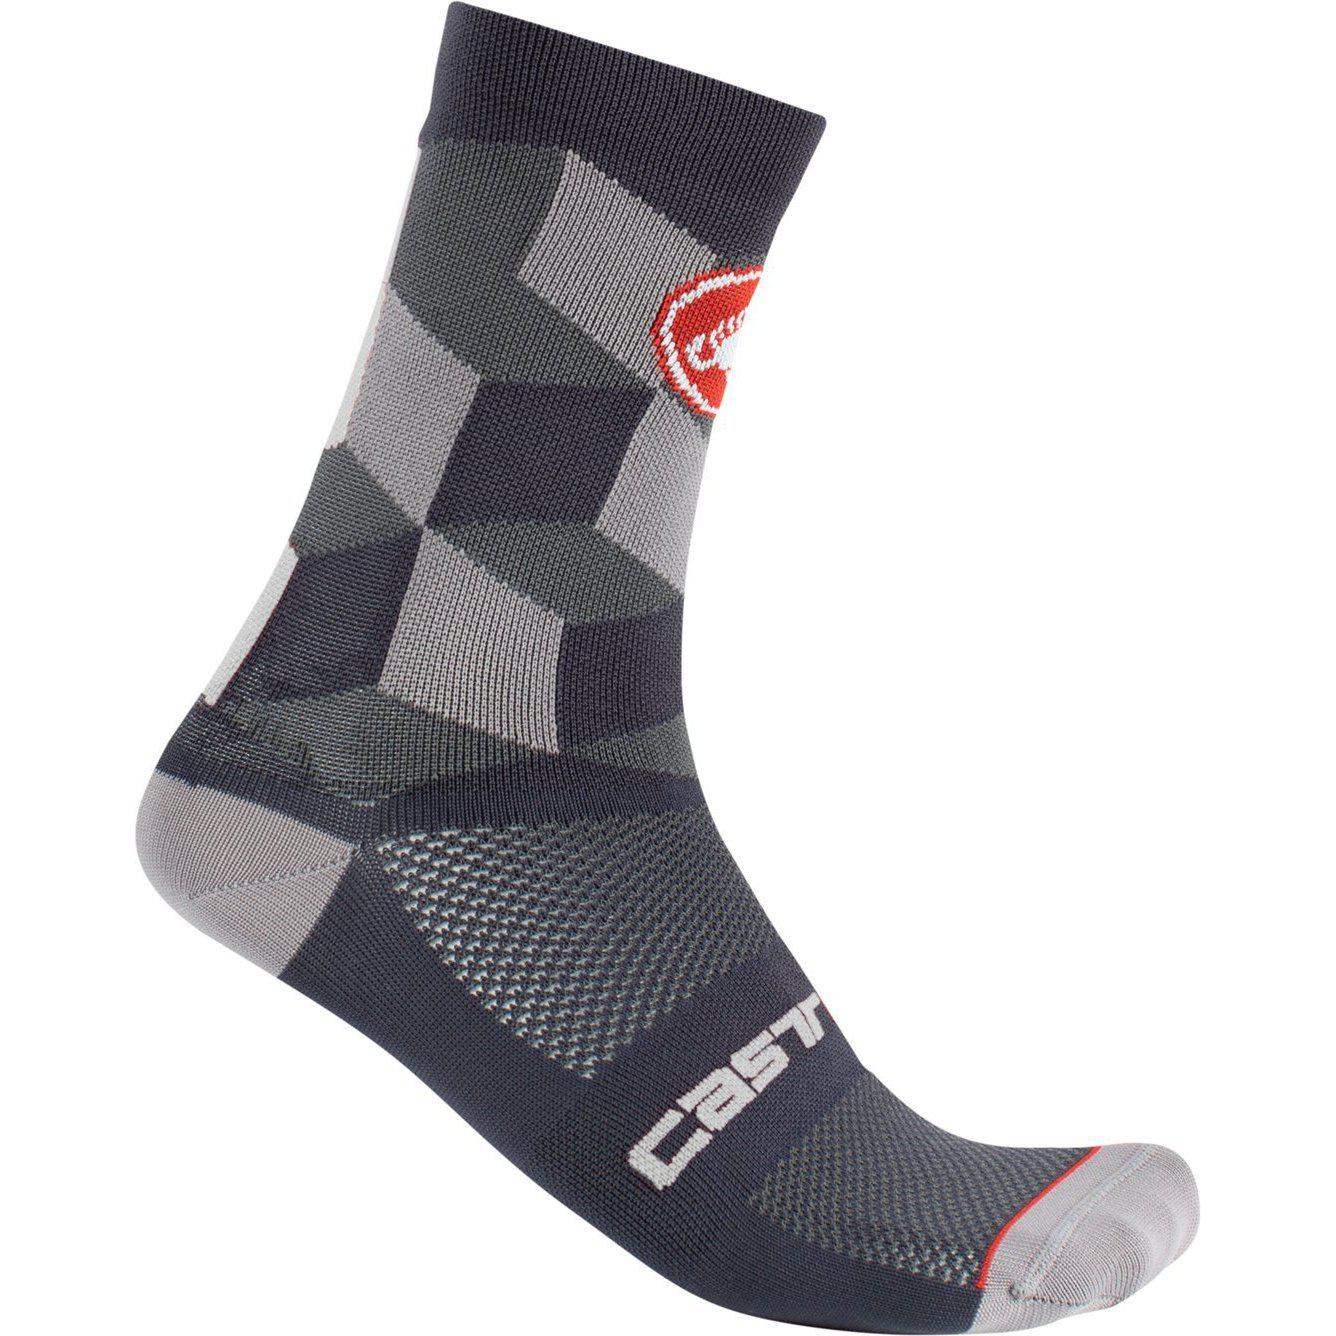 Castelli-Castelli Unlimited 15 Socks-Dark Gray-S/M-CS2004103009-saddleback-elite-performance-cycling